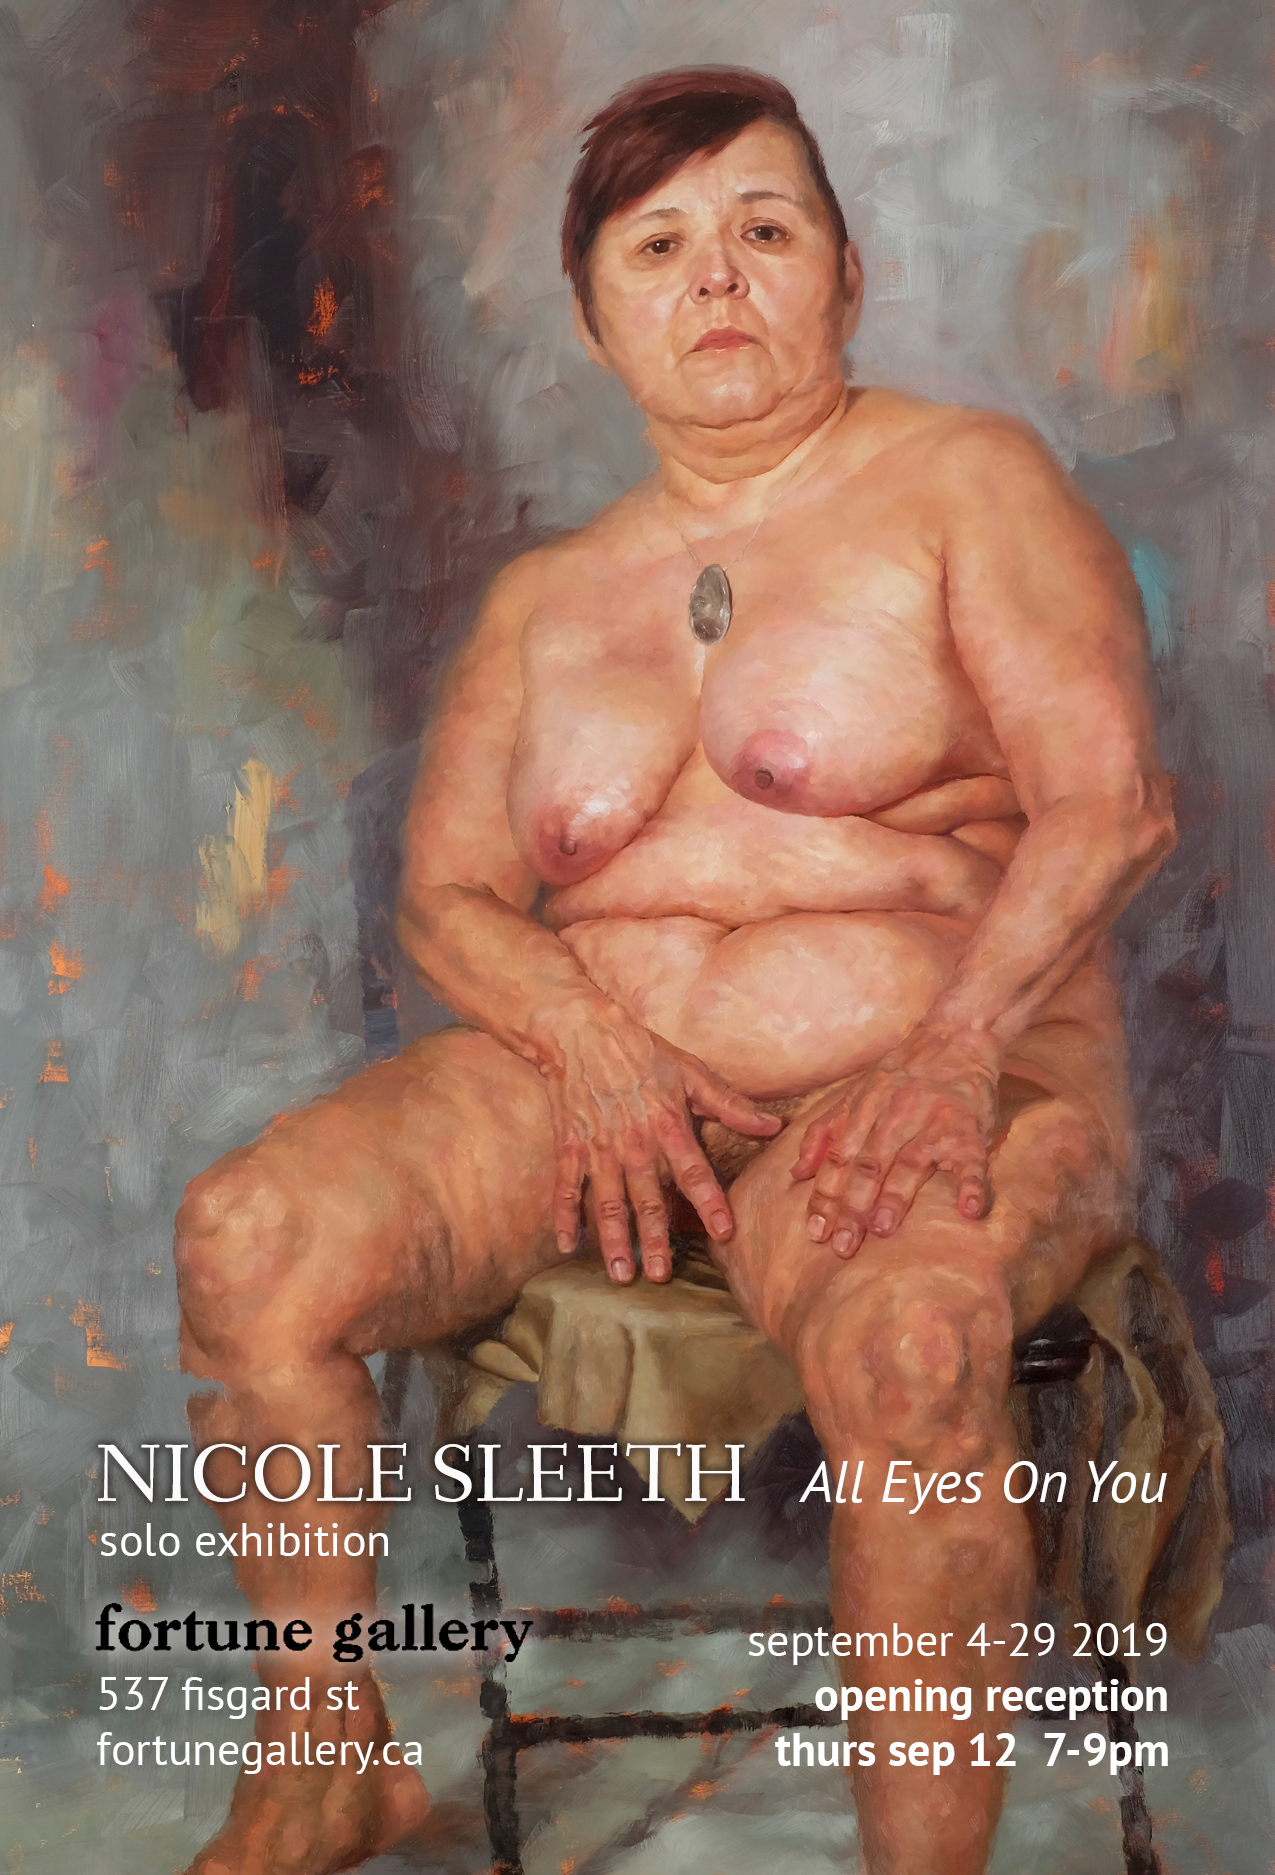 ALL EYES ON YOU - Nicole Sleeth - September 4 - 29th, 2019